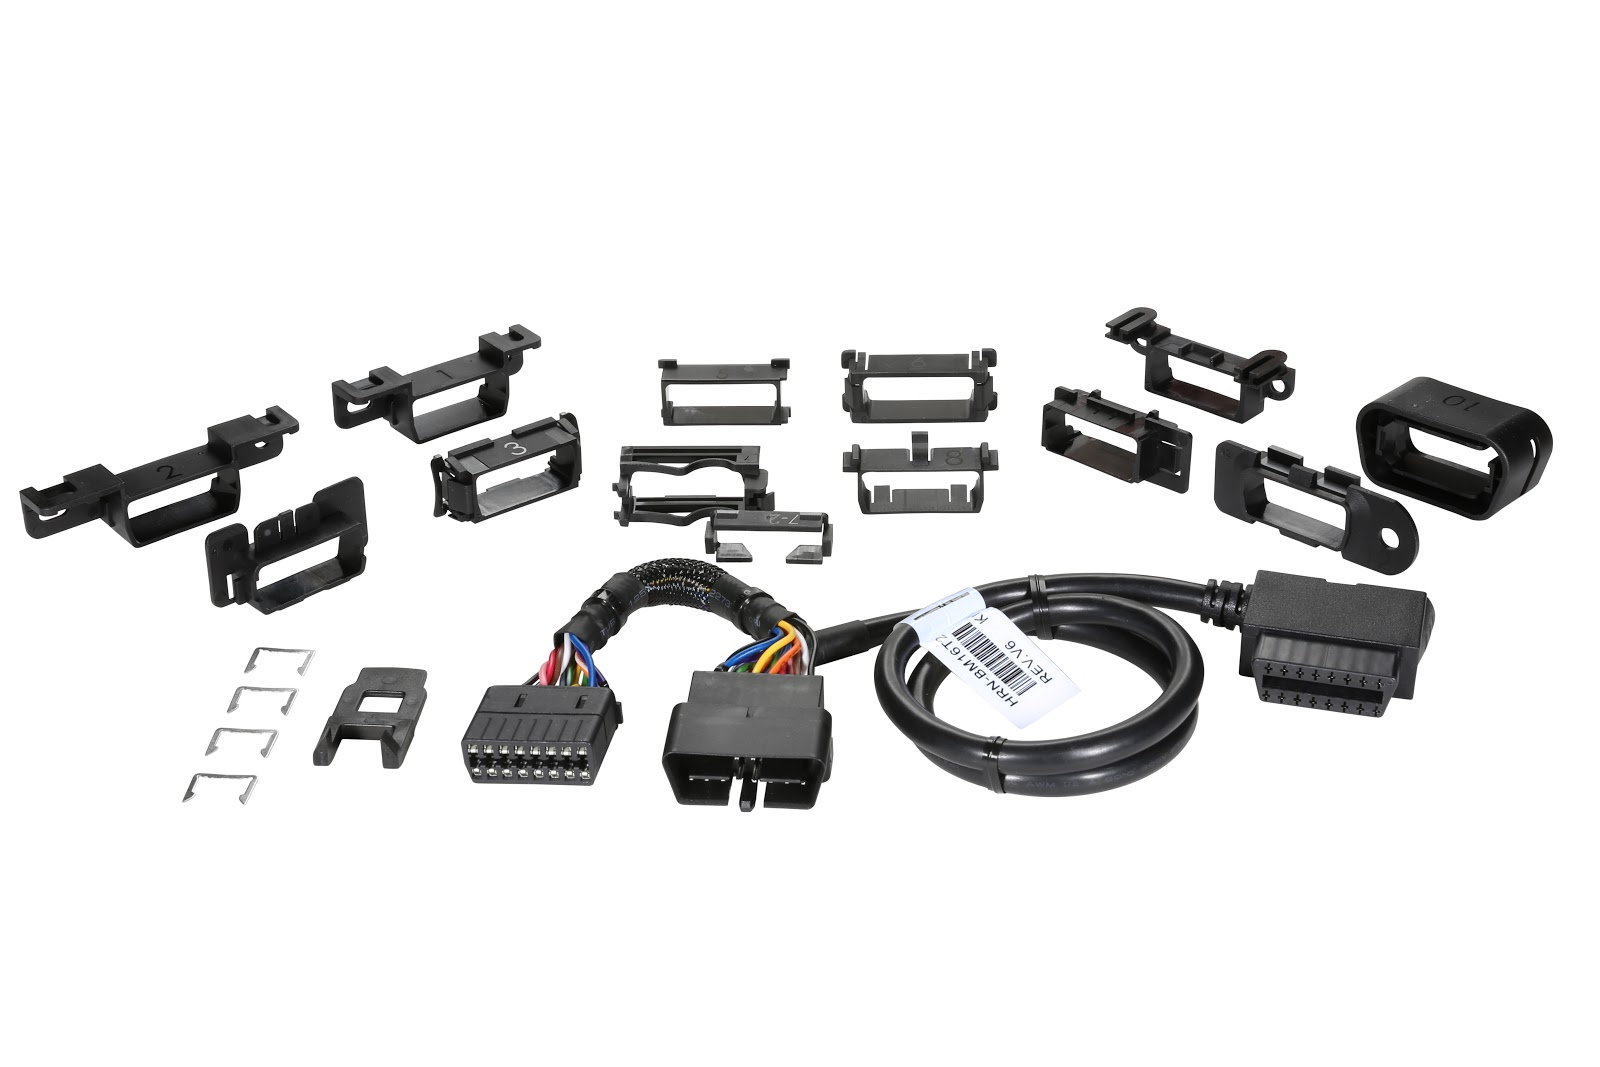 Geotab Hrn Gs16k2 Documentation 3 Circuit Universal Wiring Harness Kit The Is An Obdii T With Twelve Mounting Brackets For Connecting A Go Device To Most Light Duty And Medium Vehicles